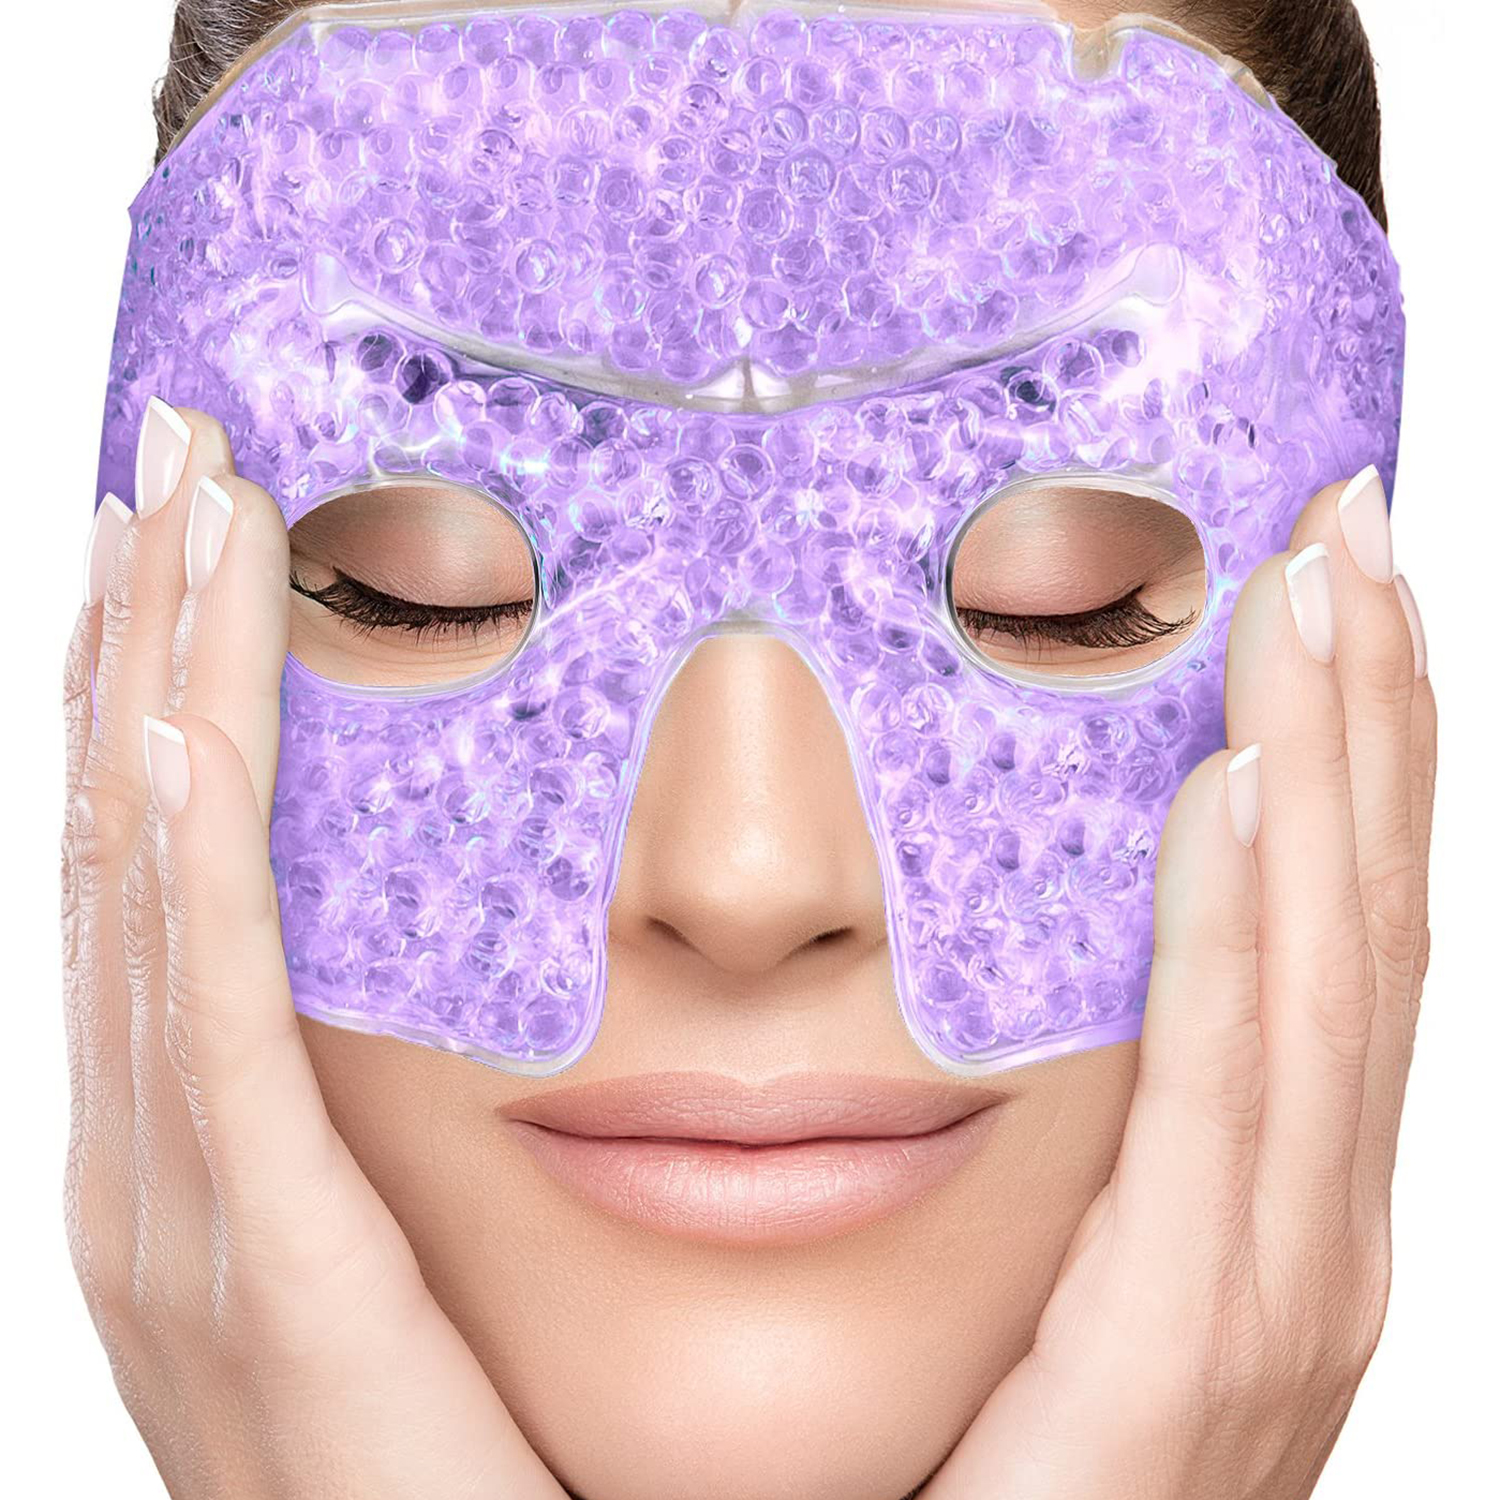 PerfeCore Eye Mask Get Rid of Puffy Eyes Migraine Relief